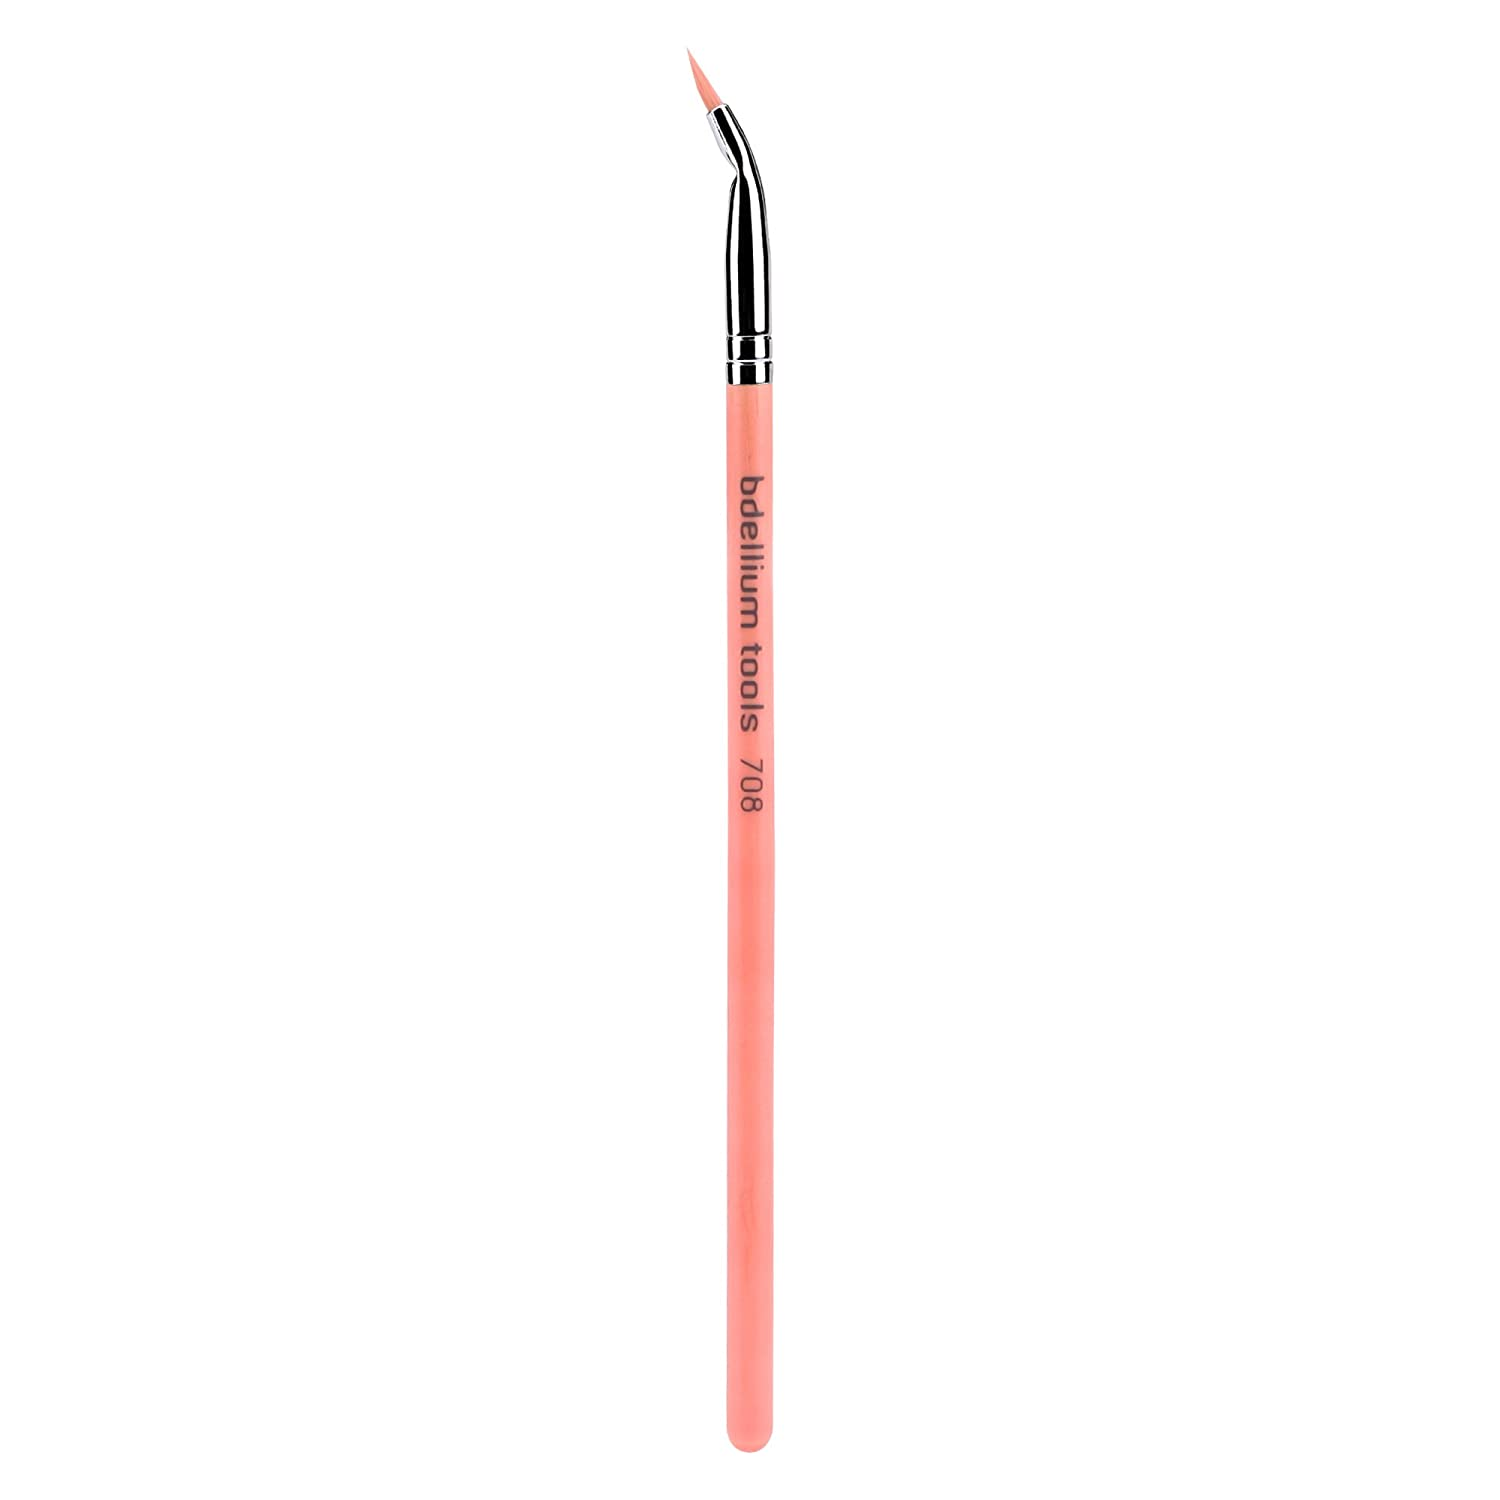 Bdellium Tools Professional Eco-Friendly Makeup Brush Pink Bambu Series - Bent Eyeliner 708: Beauty